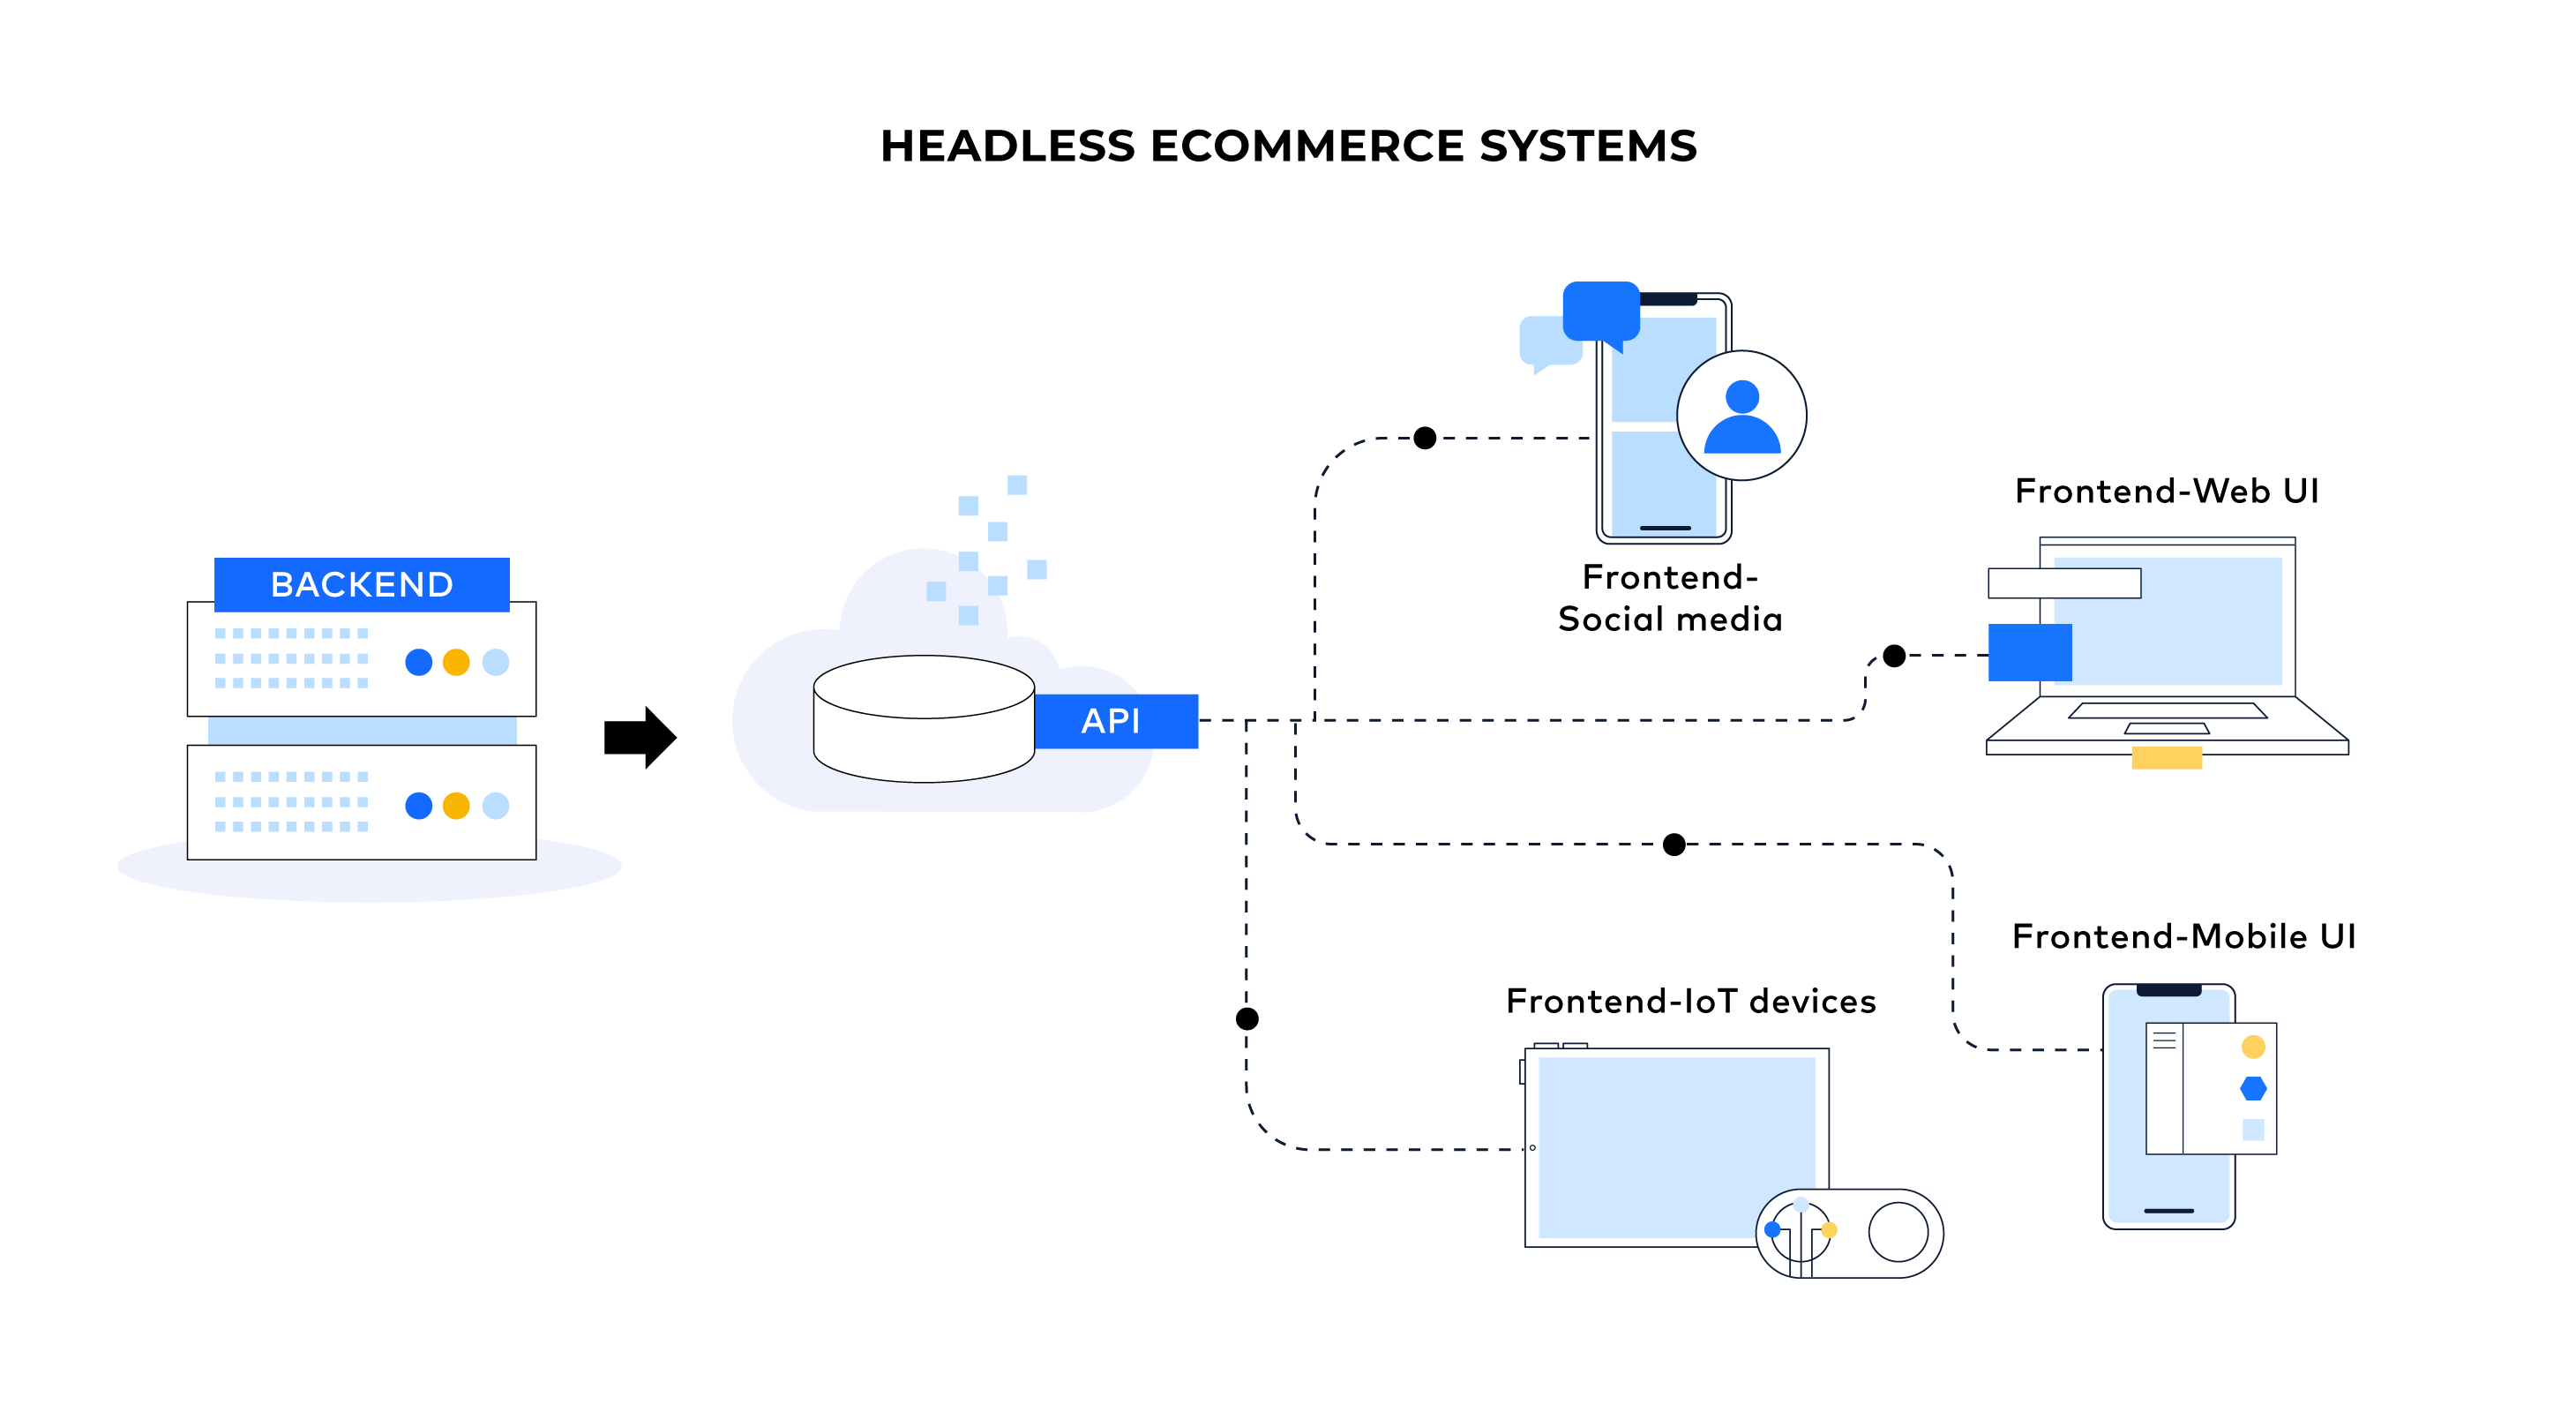 Diagram showing the architecture of headless commerce systems